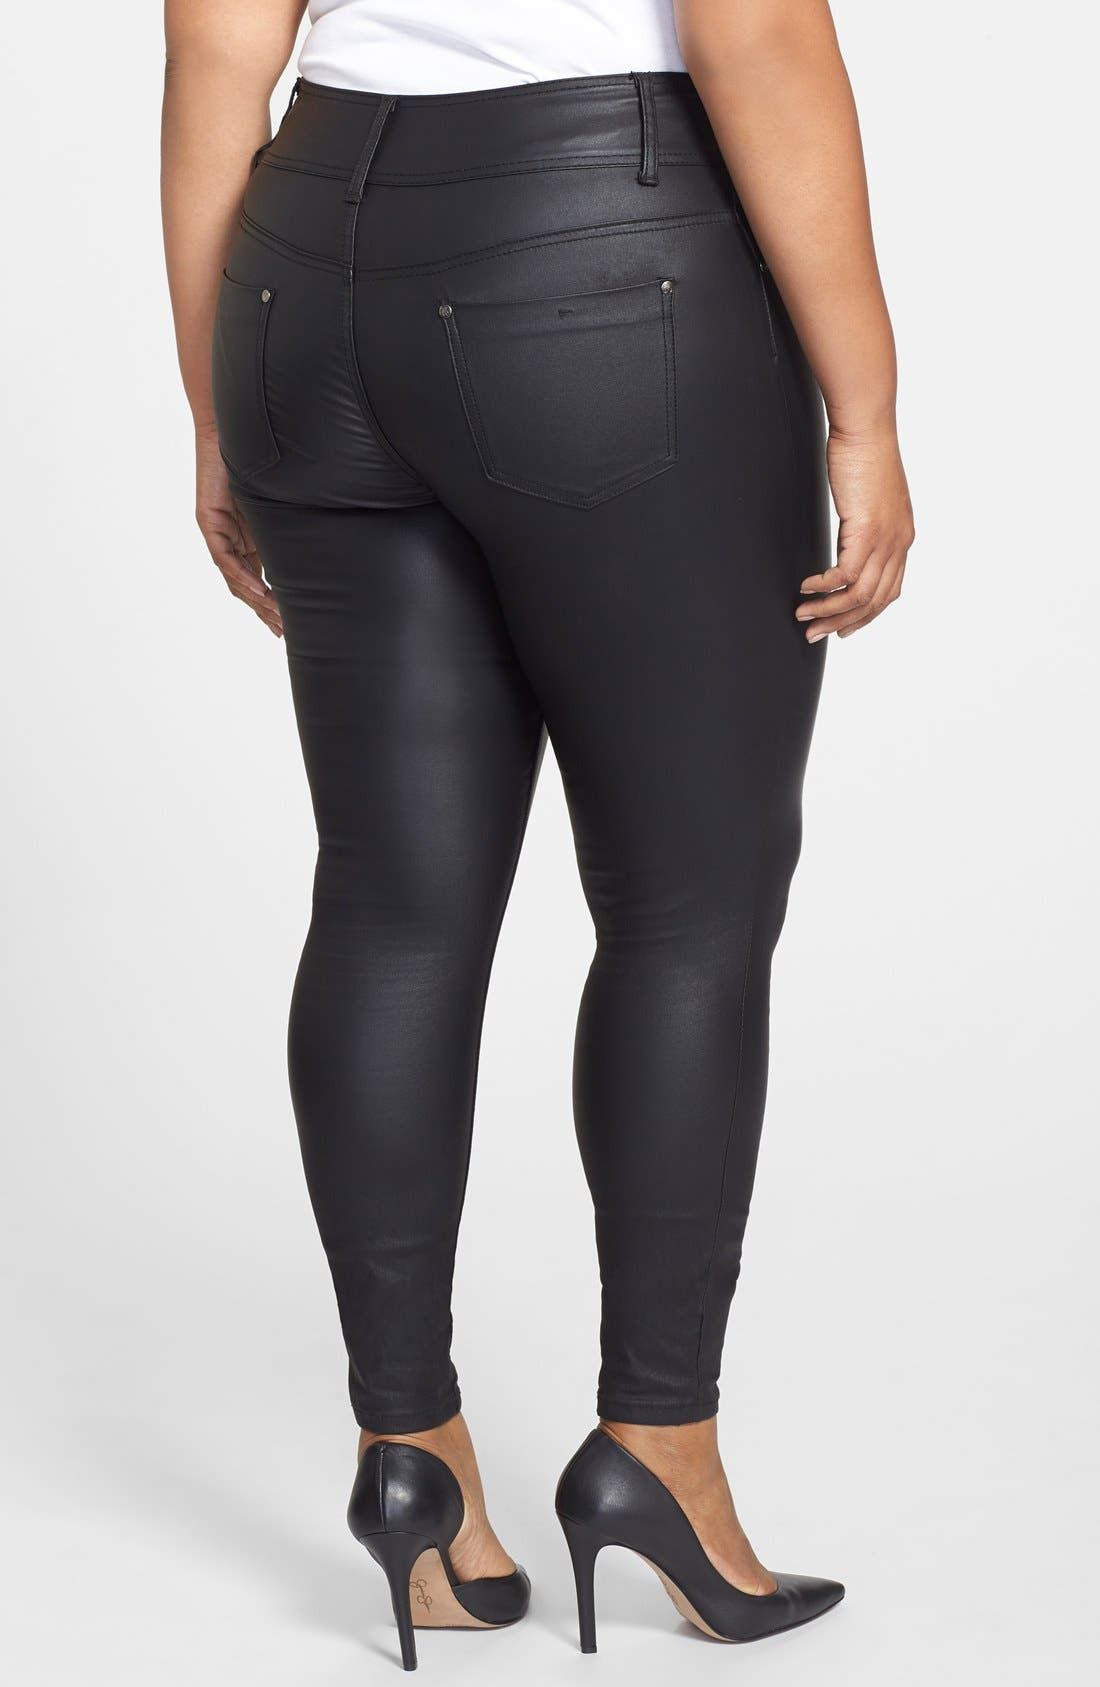 Wet Look Stretch Skinny Jeans,                             Alternate thumbnail 2, color,                             Black